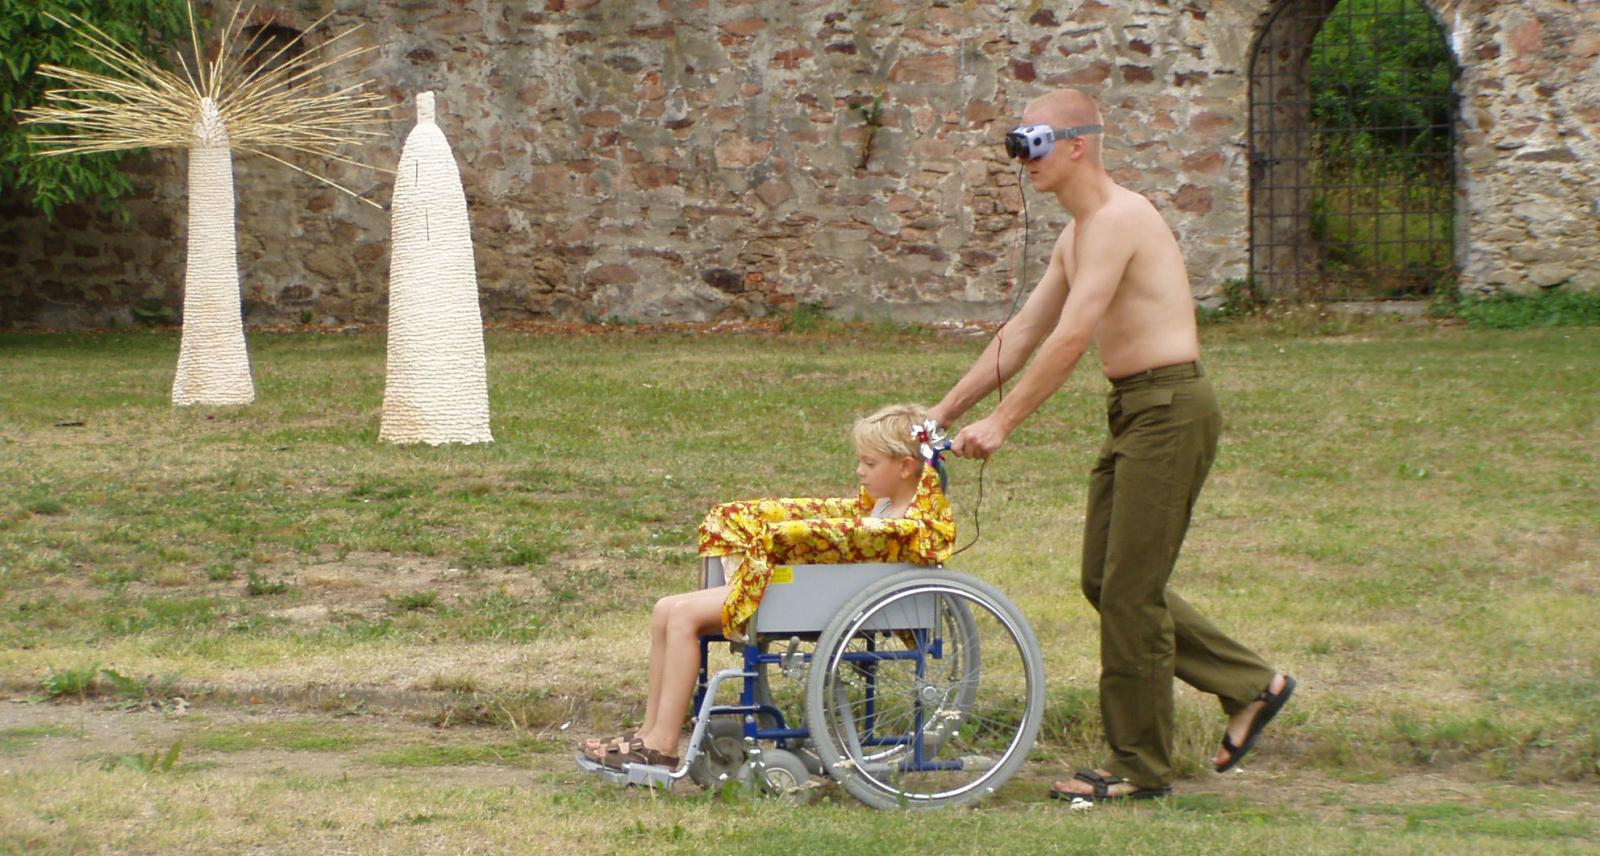 The Human Carriages,  along with Václav Prokeš  /  action during the Theatre in the Grass Festival, Bechyně / 2003